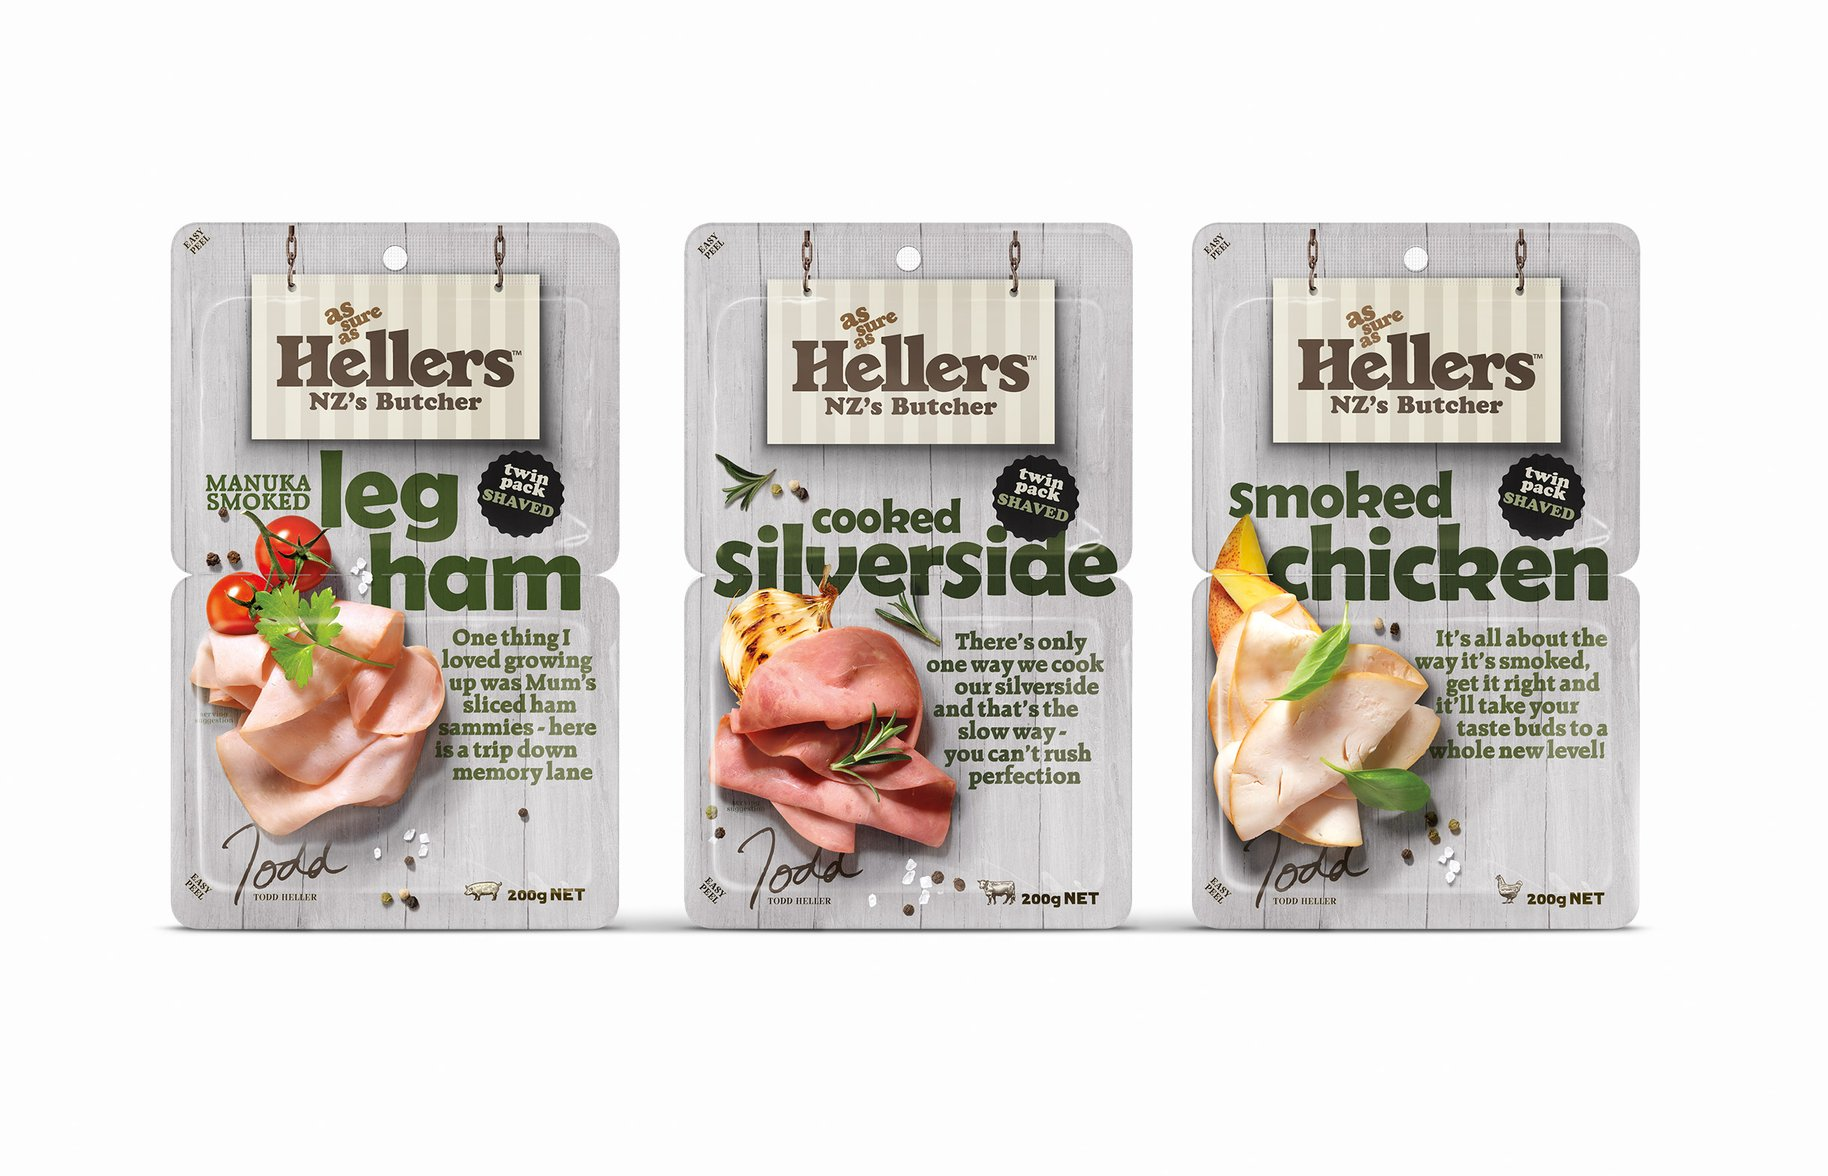 Hellers shaved meats packaging